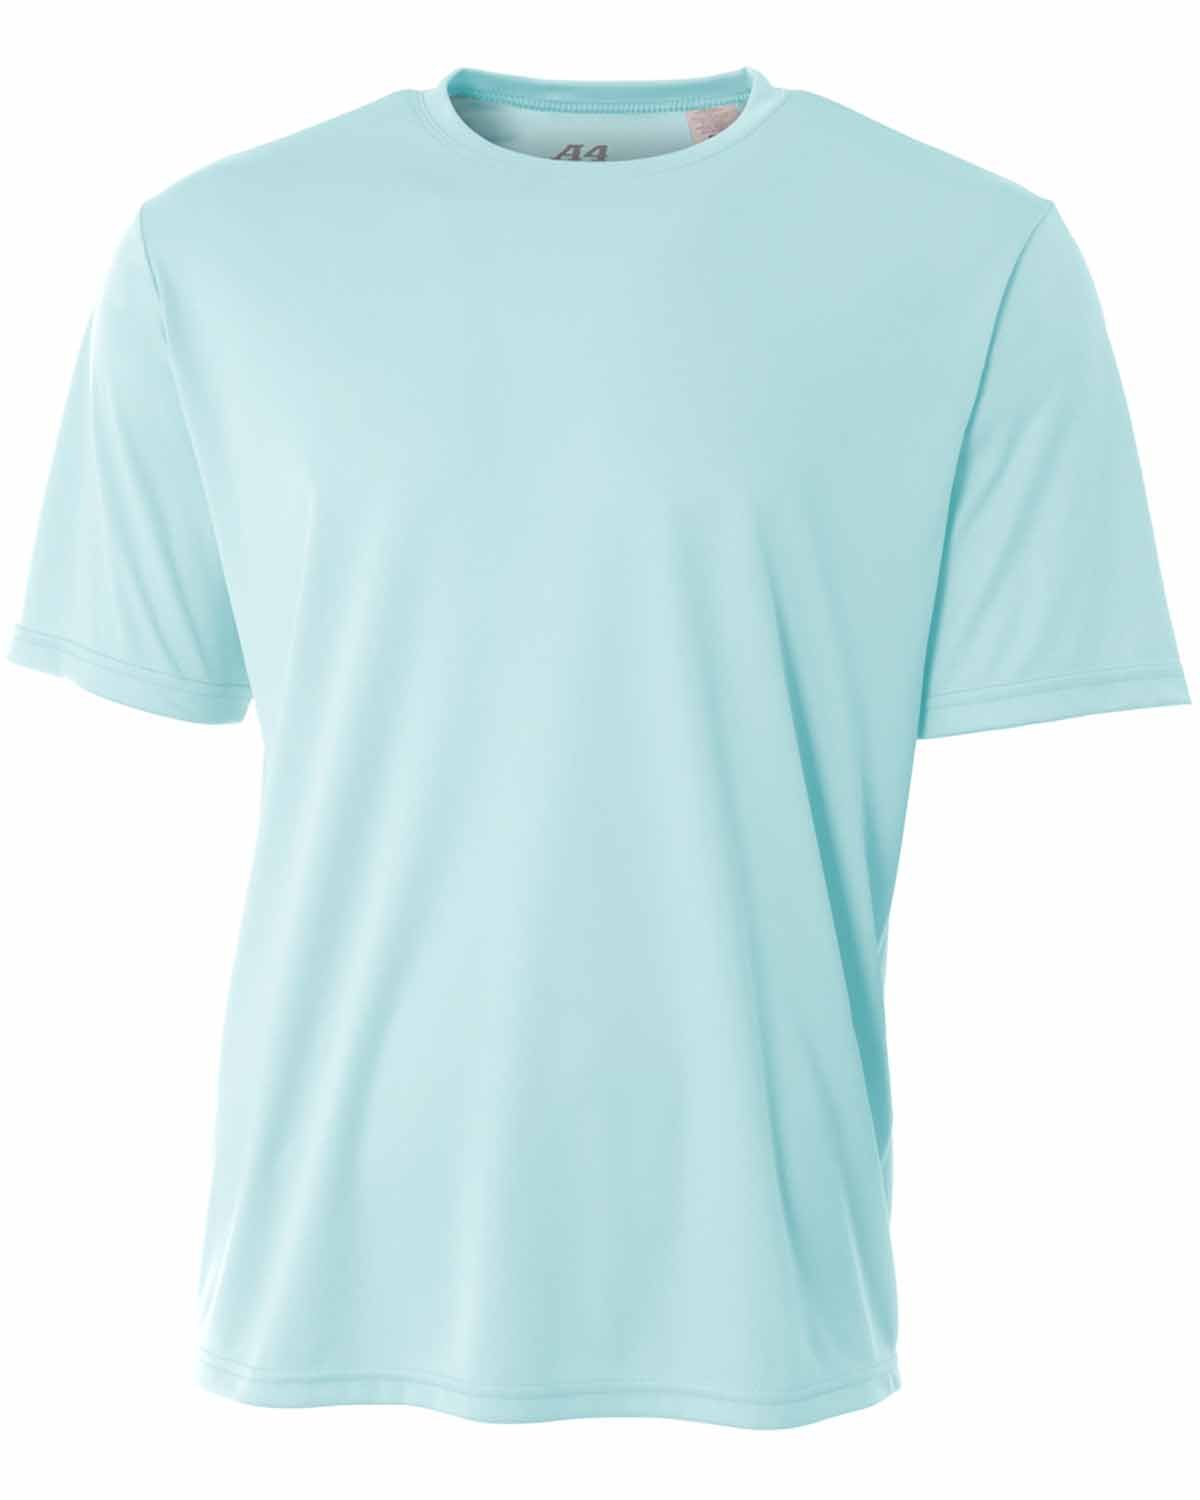 A4 Youth Cooling Performance T-Shirt PASTEL BLUE